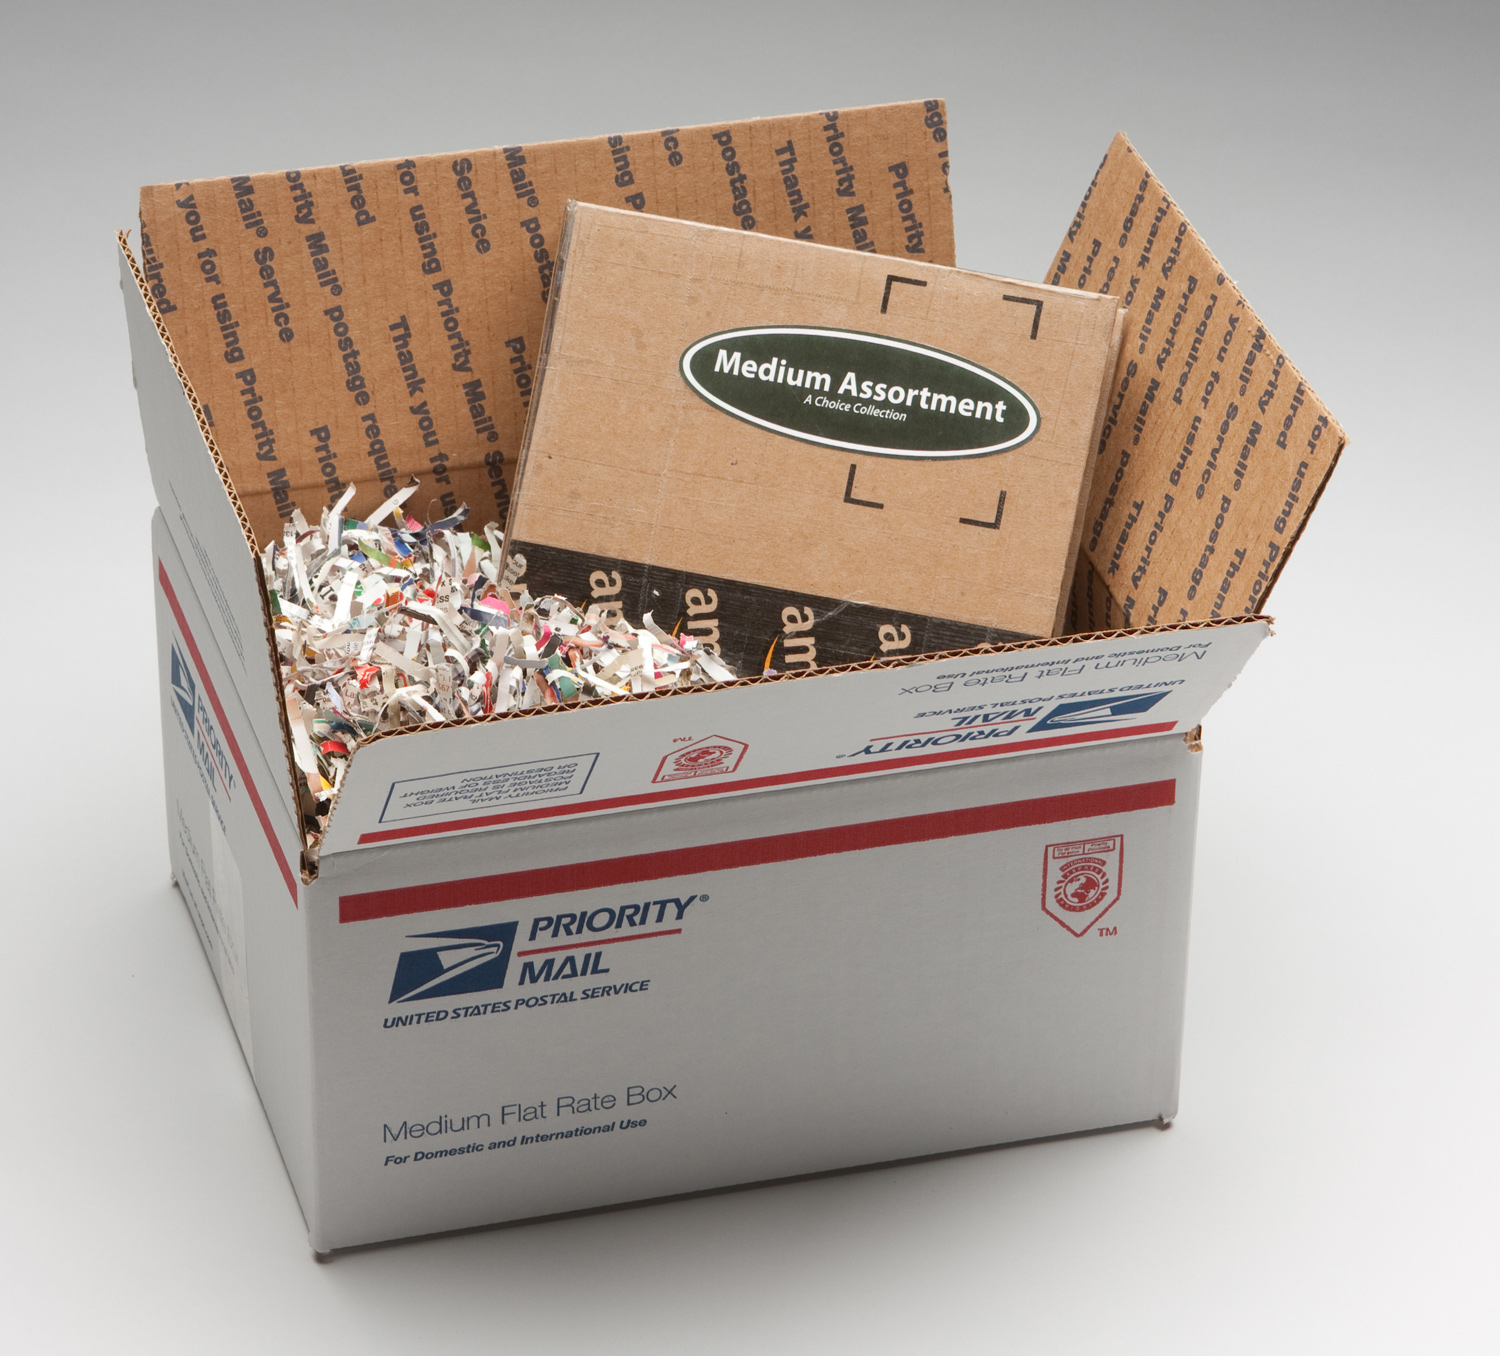 The clamshell in the shipping container, packed in shredded mail order catalogs.